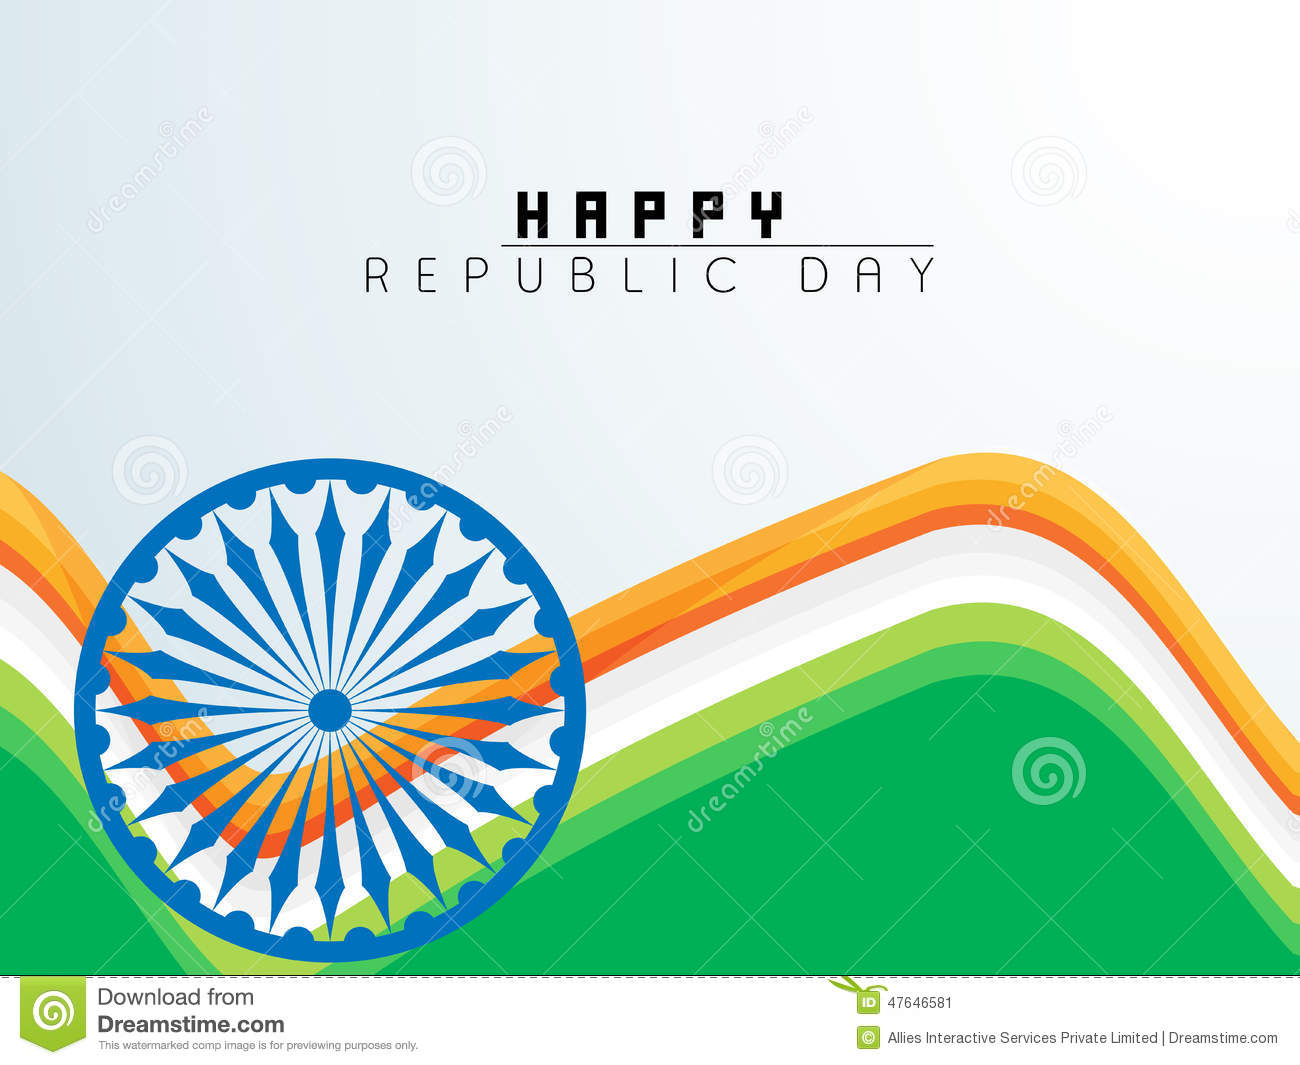 national income in india after independence The indian national congress the foundation of the indian national congress in 1885 as an all india, secular political party, is widely regarded as a key turning point in formalising opposition to.